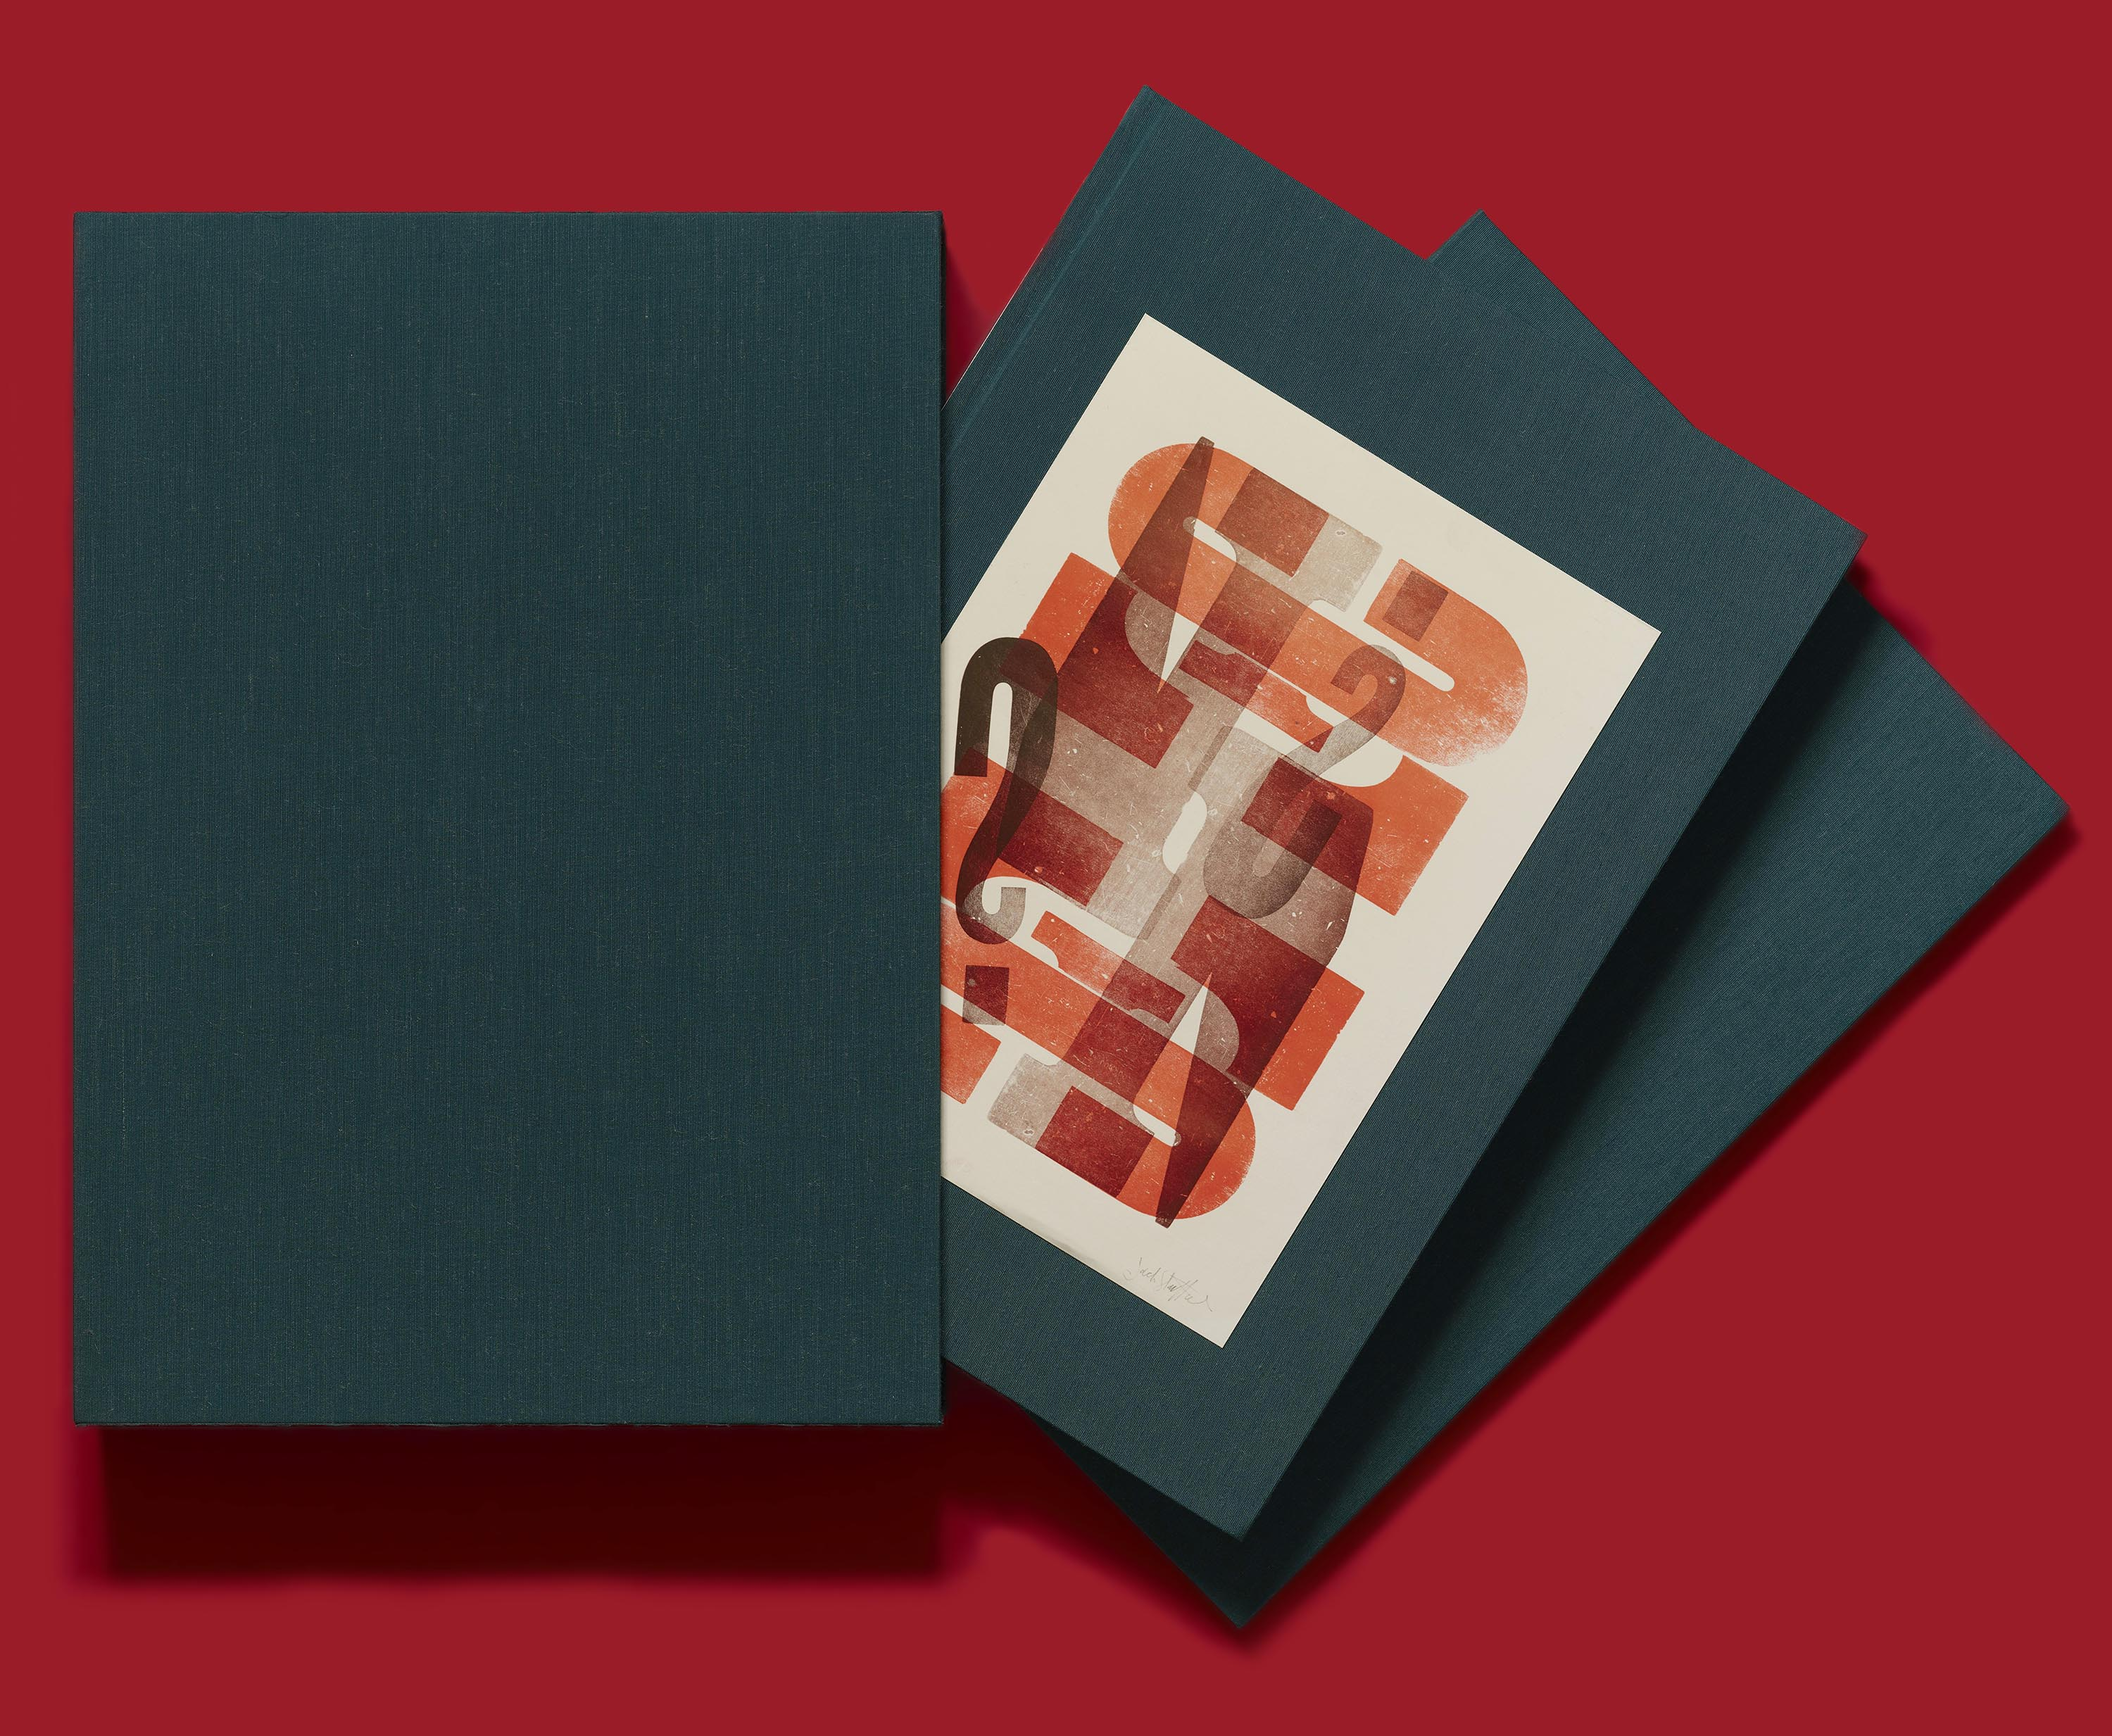 The deluxe edition of Only on Saturday, with its portfolio of letterpress proofs.